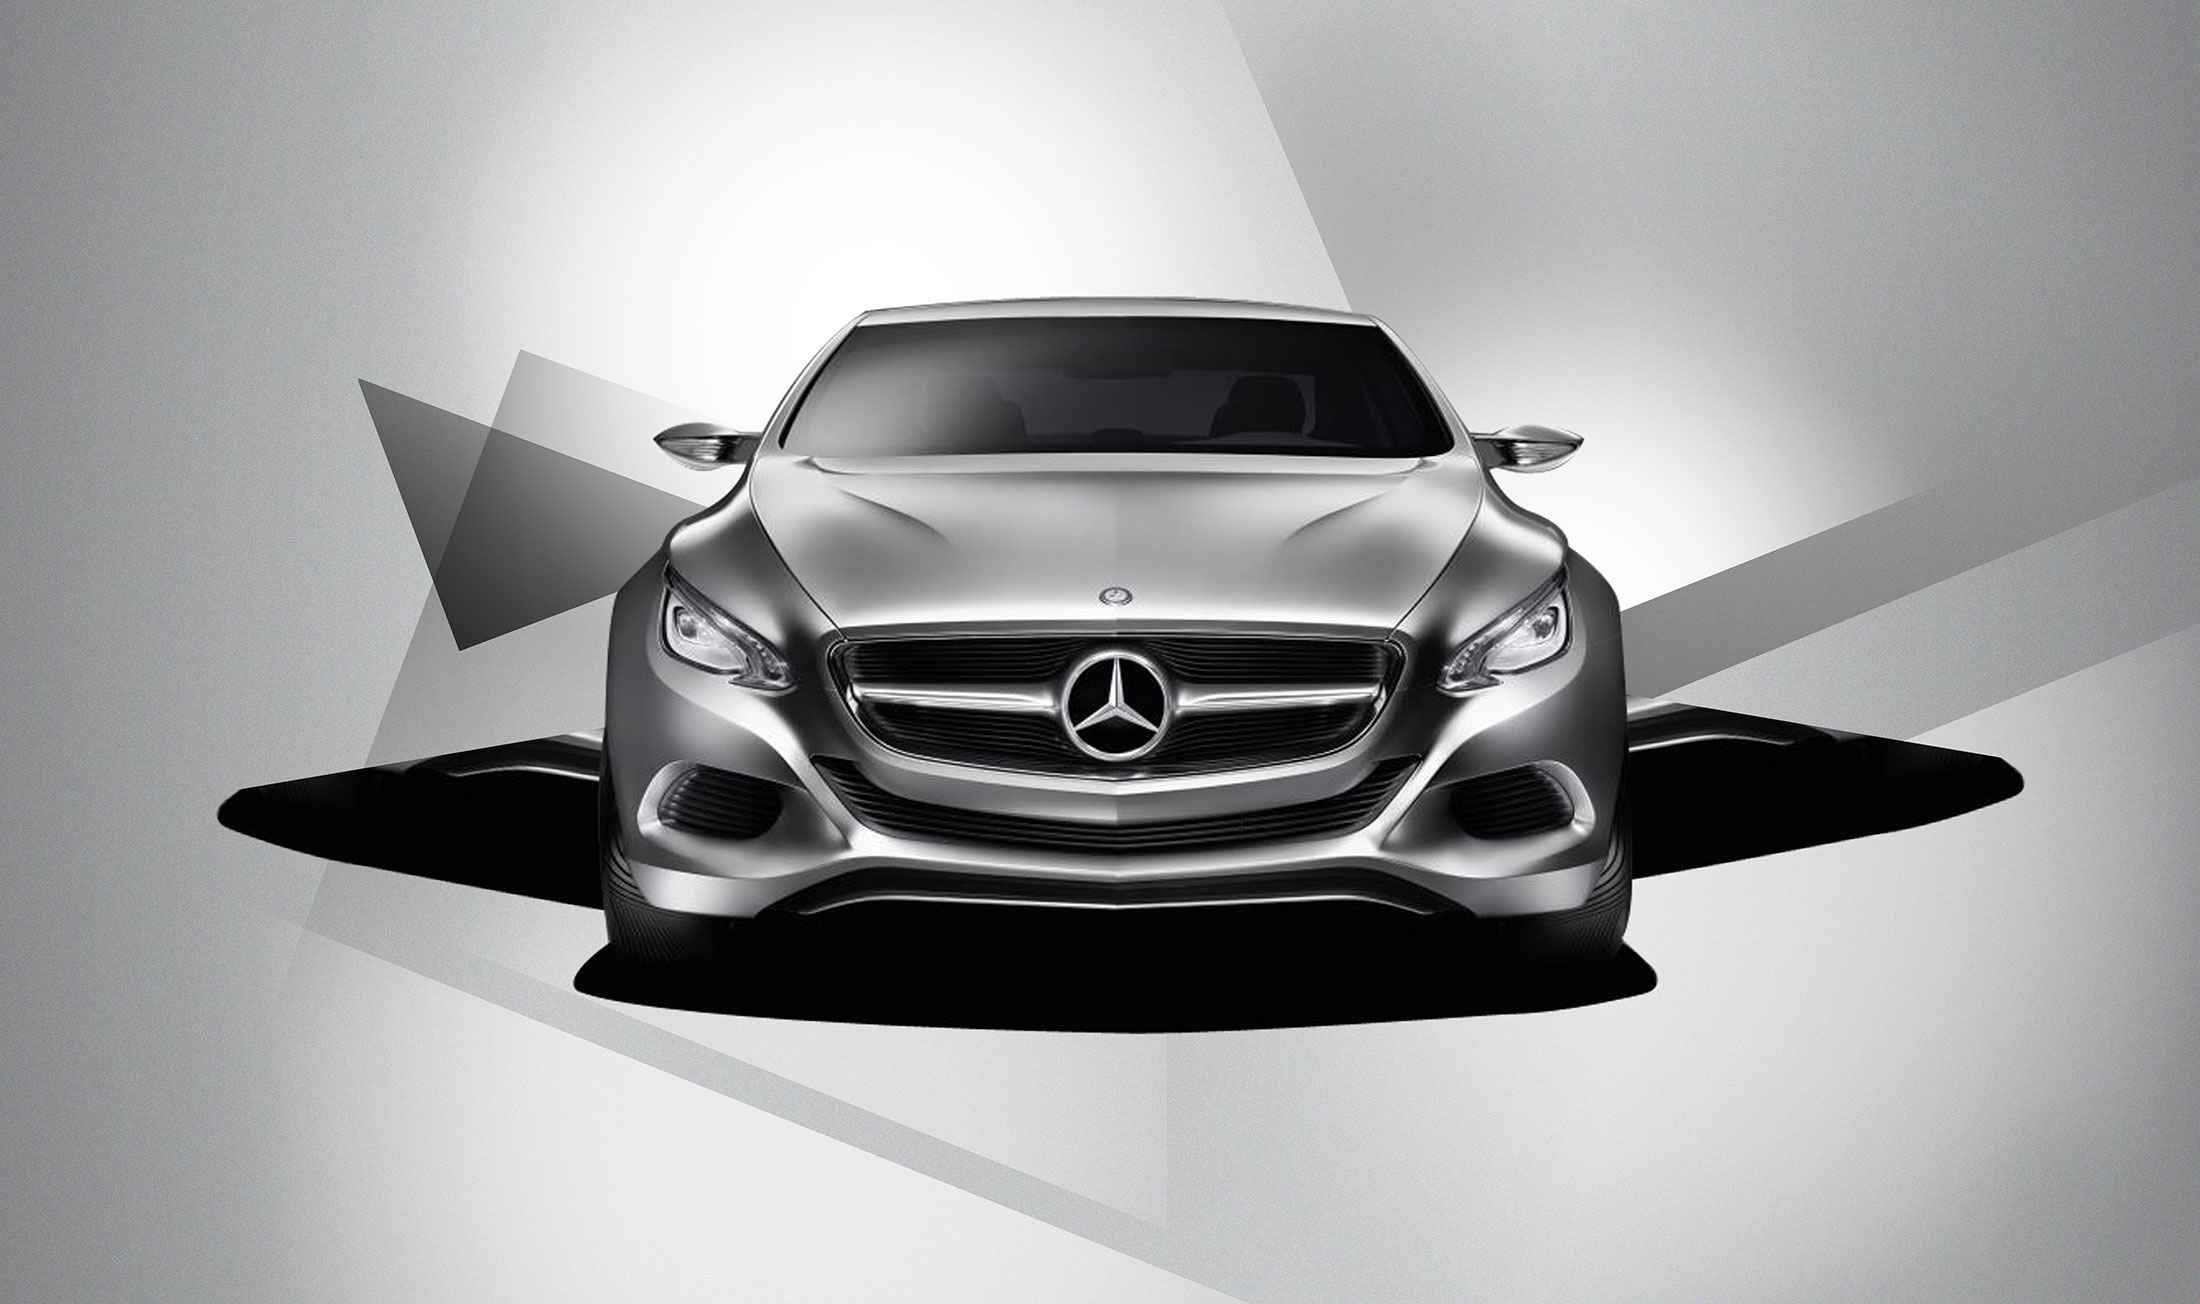 Hero-Mercedes-Benz-Nikolas-Wrobel-Design